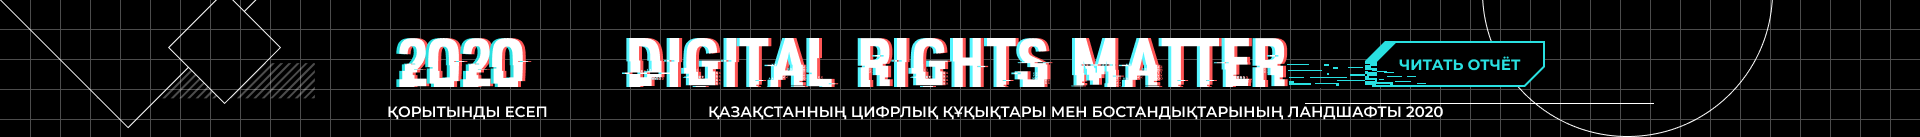 banner to digital rights matter